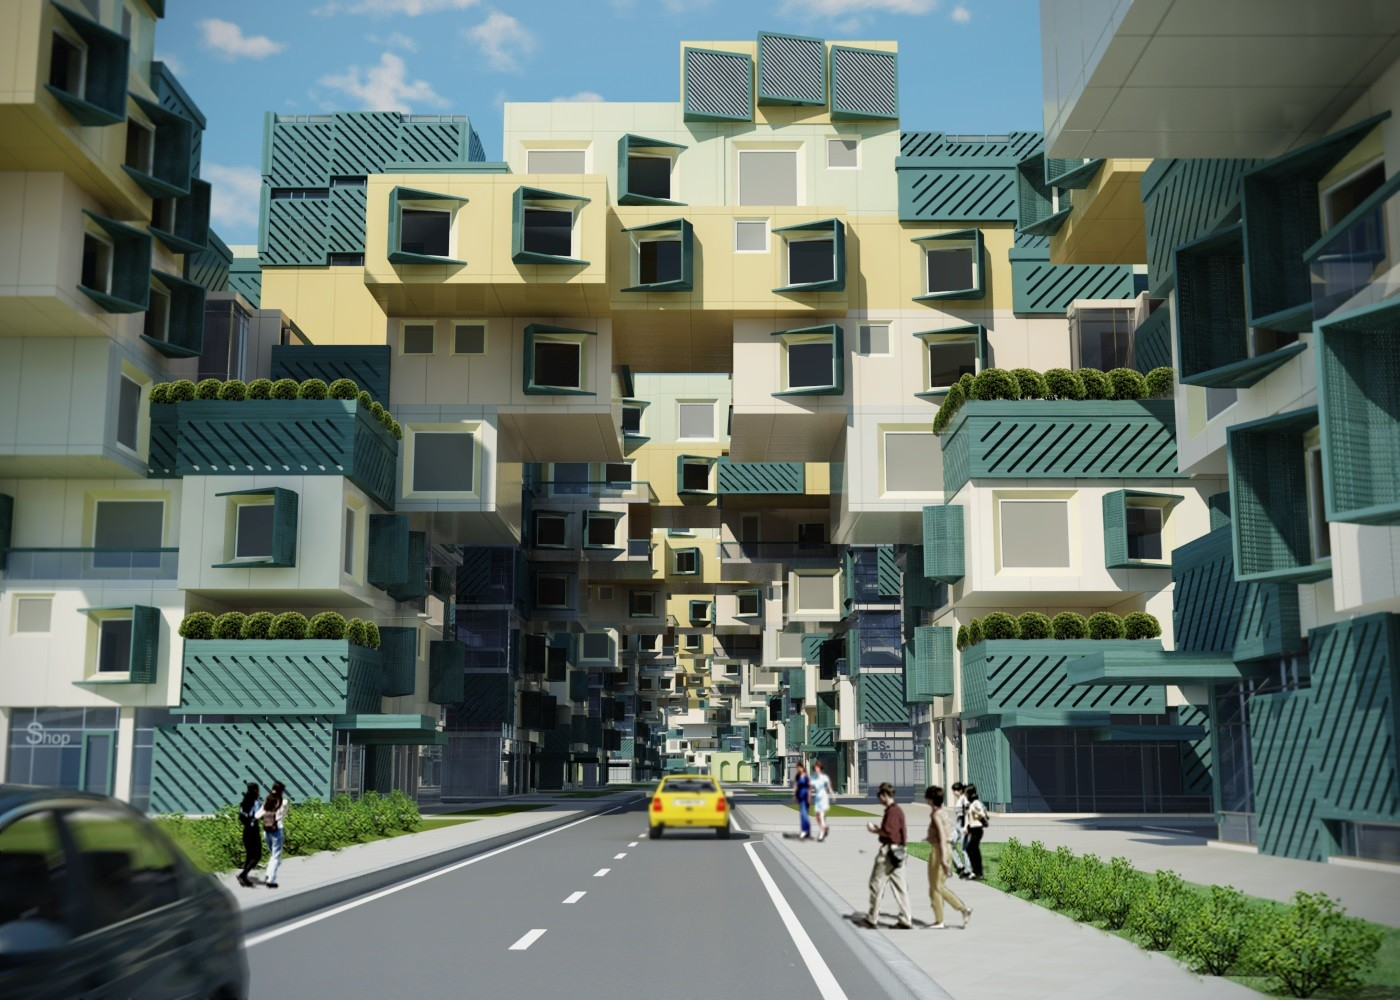 UN-Habitat Announces Winners of Mass Housing Competition, The entry by Team Render for Homs, Syria. Image Courtesy of Render (Marwa Al-Sabouni & Khaled Komee)